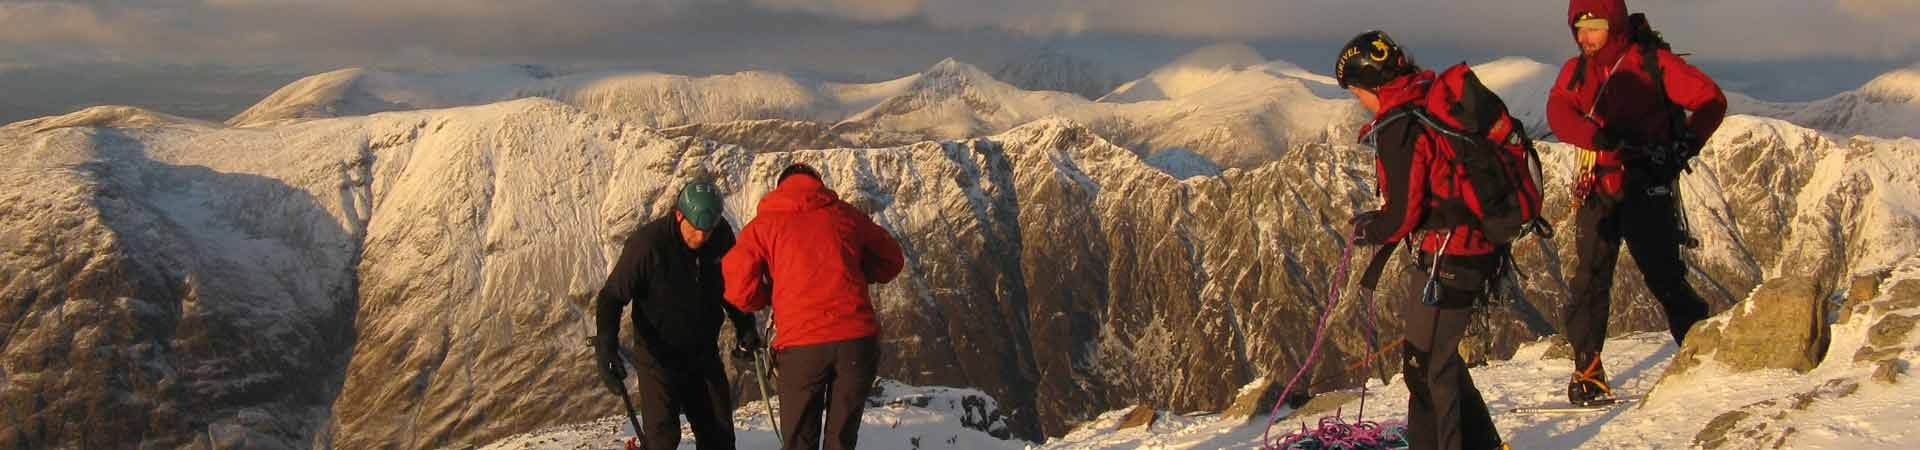 Four students mountaineering in the Scottish Highlands during winter with snow covered mountains behind them.